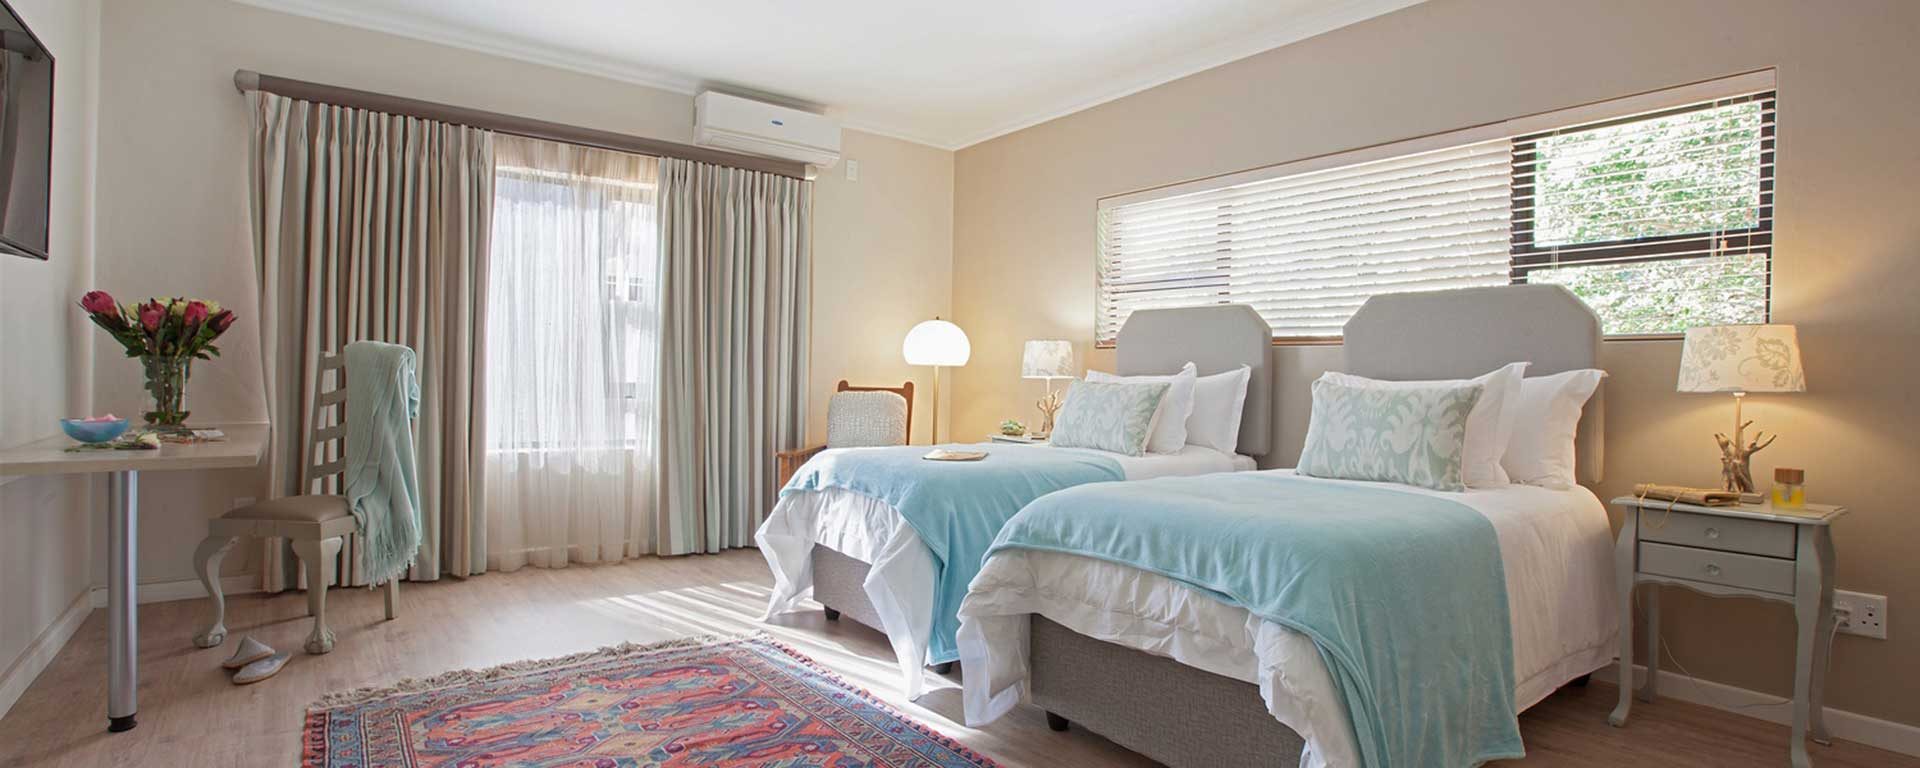 bedroom of accommodation in cape town